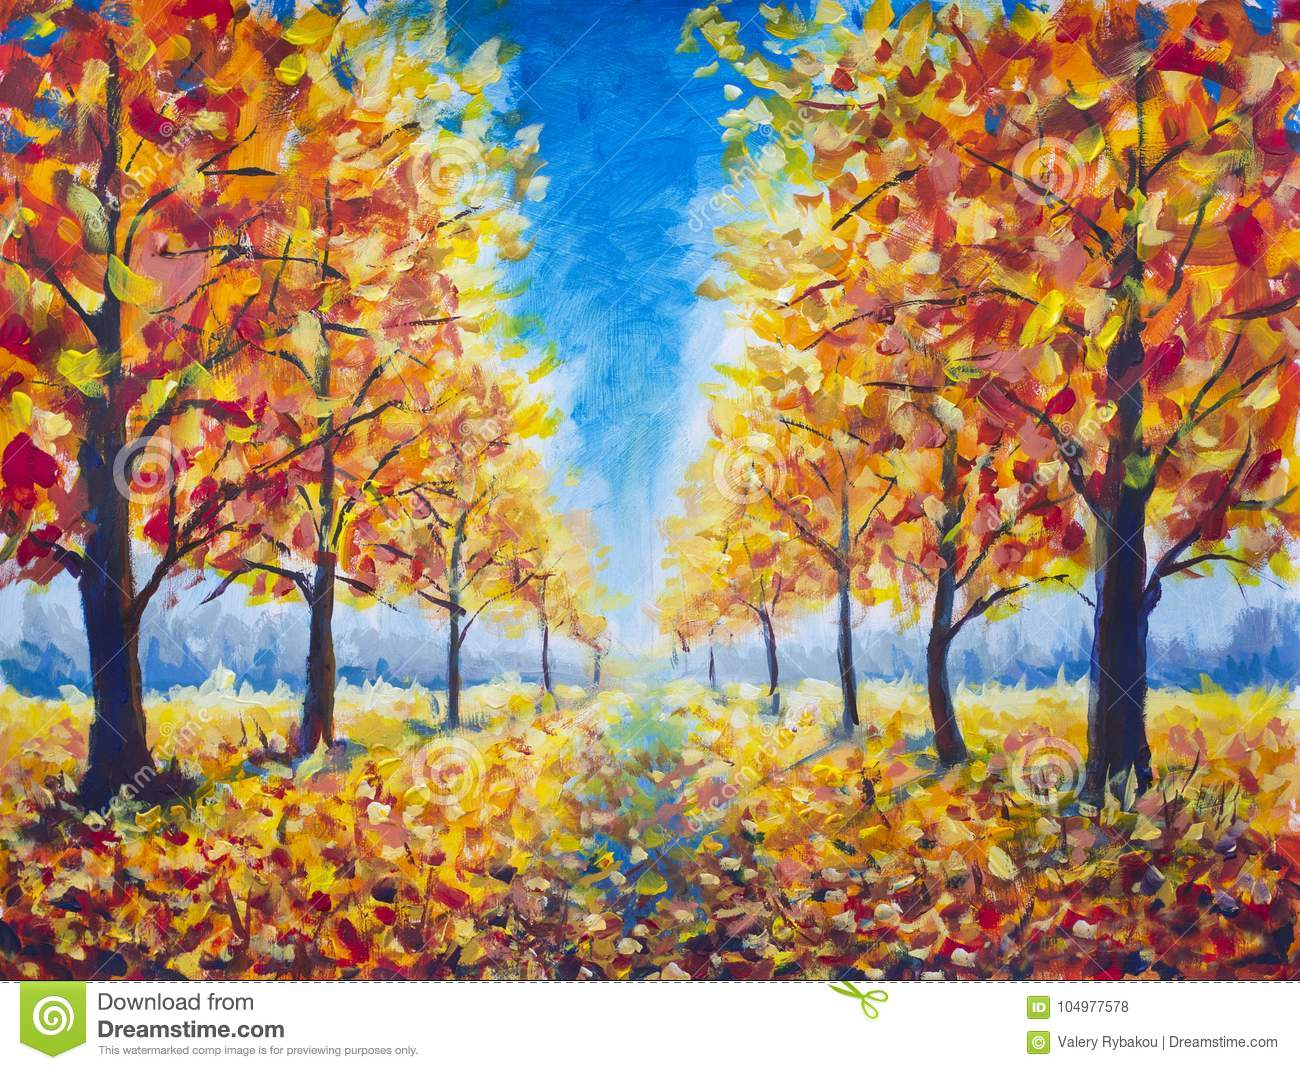 Original Oil Painting Autumn parkway, orange gold yellow dark trees in autumn park, golden autumn walkway, orange autumn nature. R